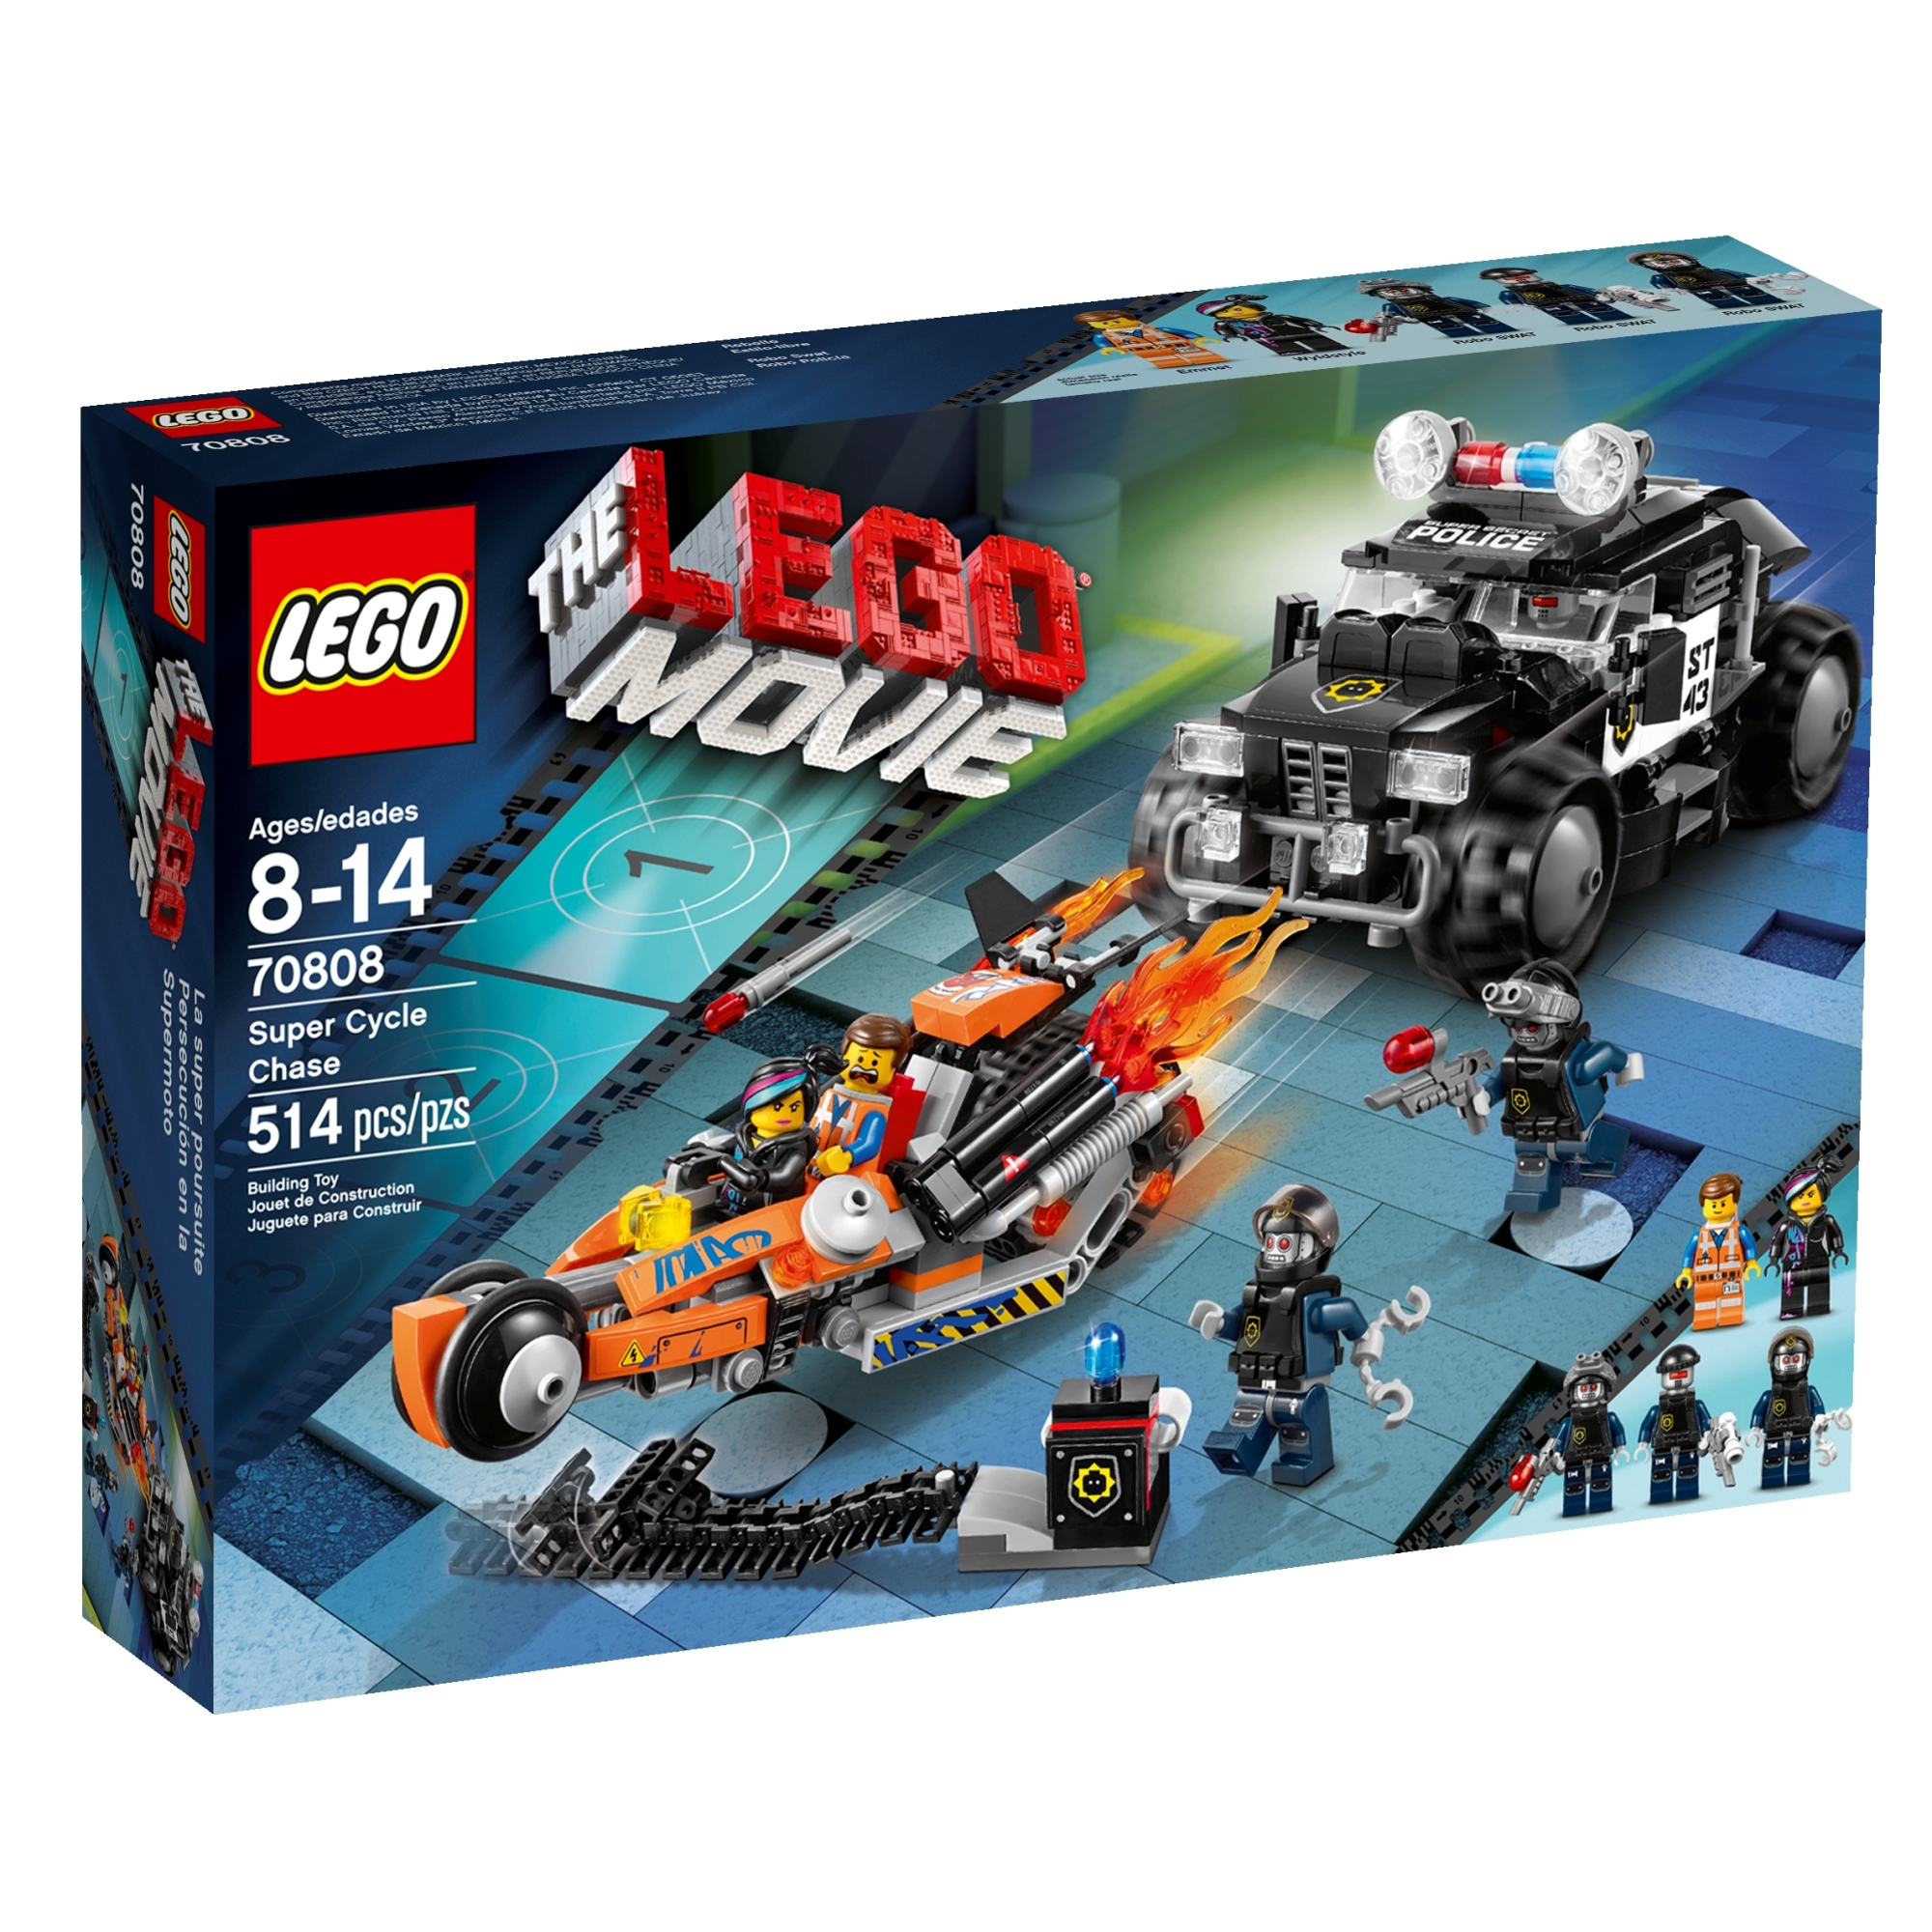 Lego Movie Toys : Super cycle chase brickipedia fandom powered by